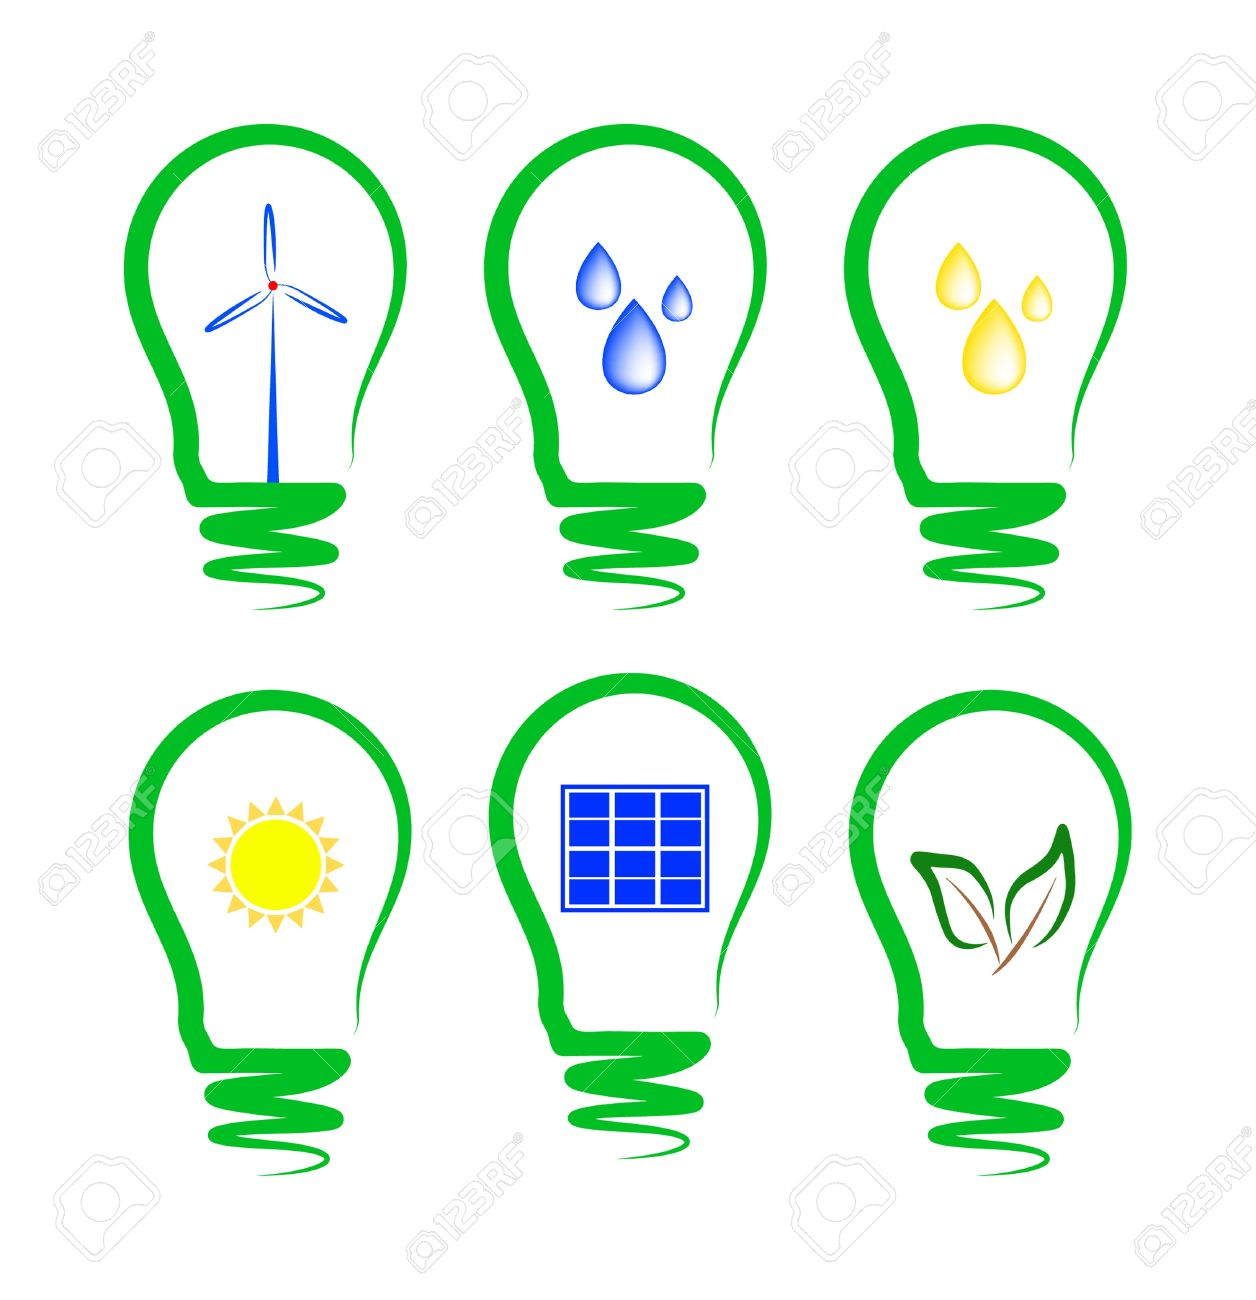 Energy clipart different #3